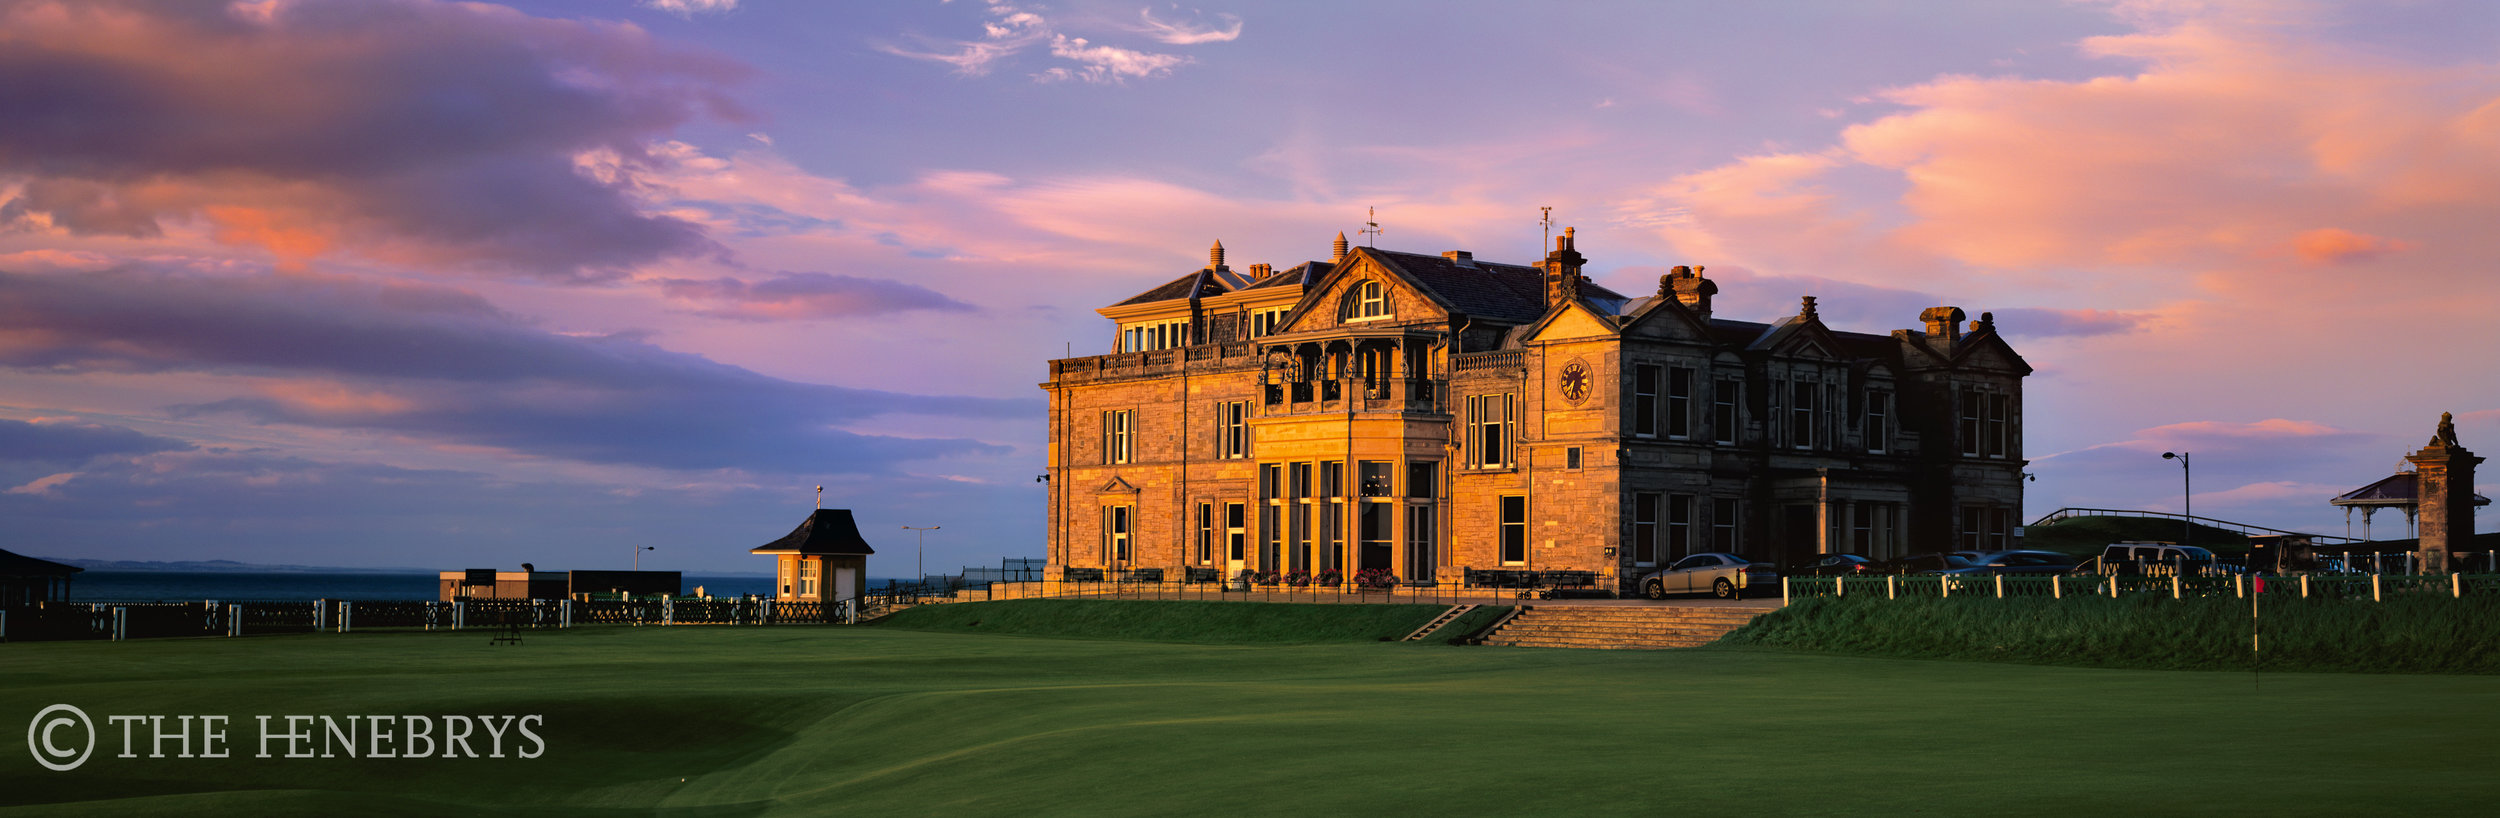 Royal & Ancient Golf Clubhouse, 18th Green Of The Old Course, St. Andrews, Scotland